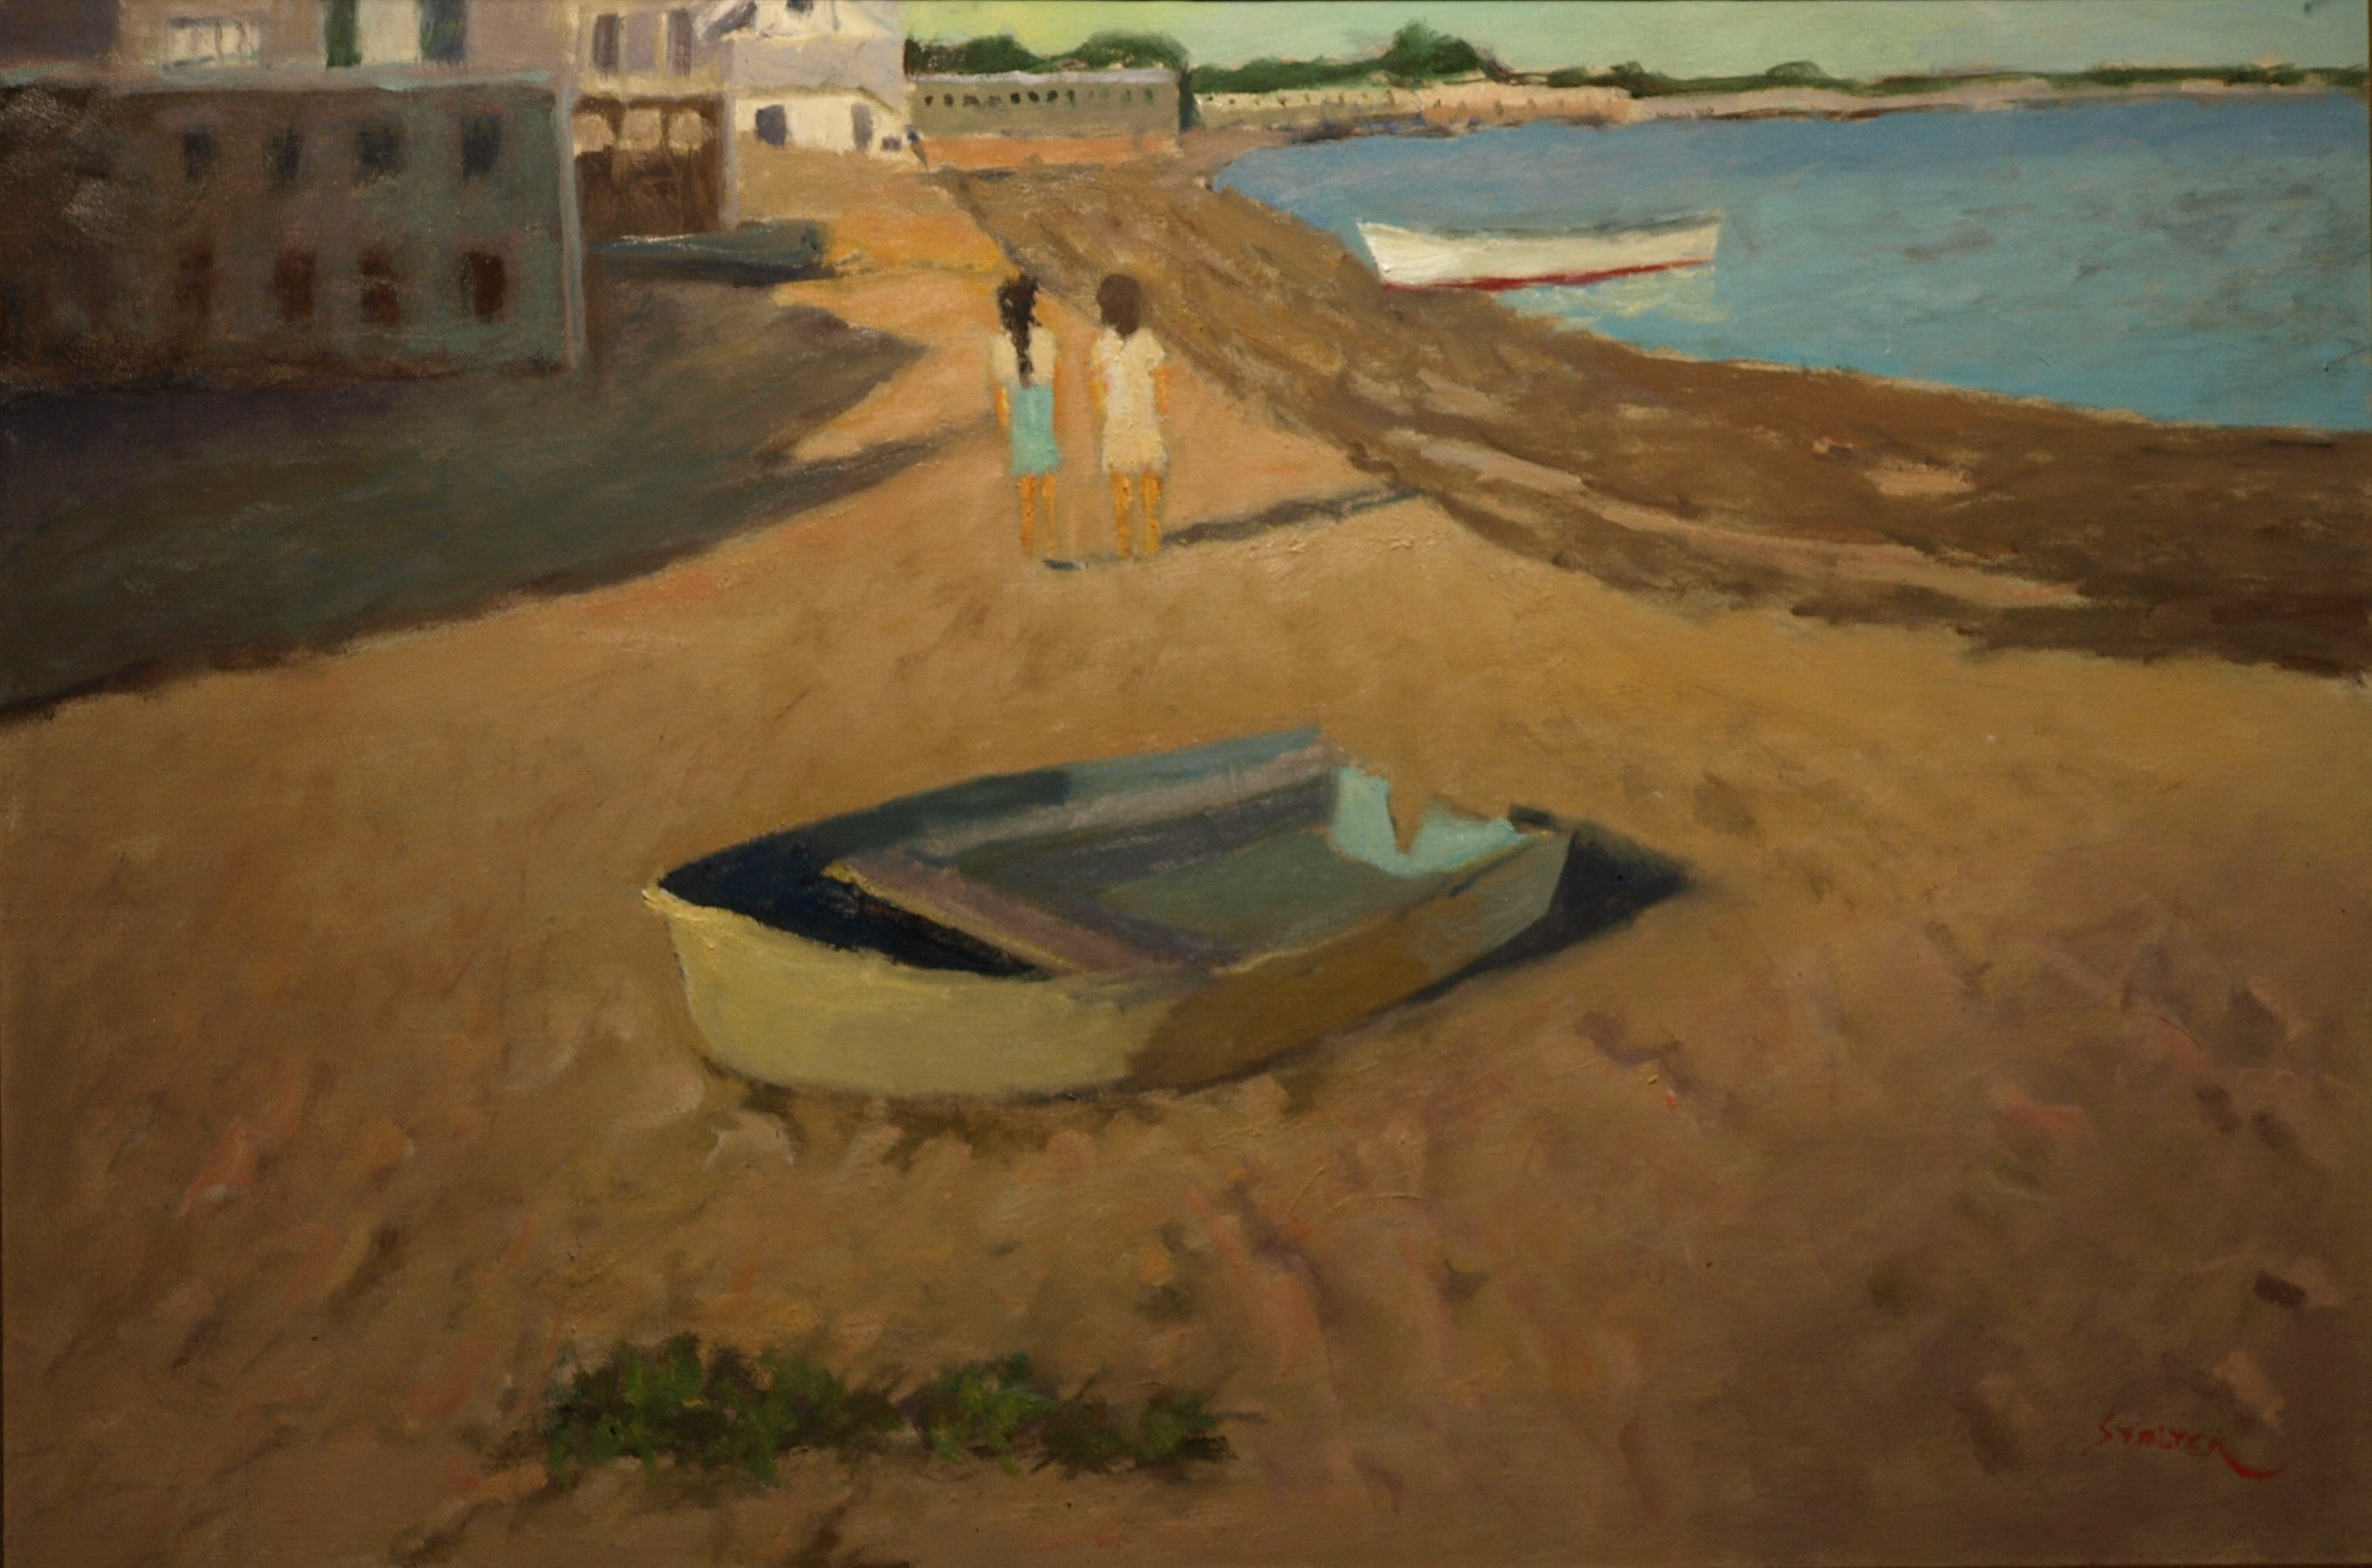 Beached Rowboat, Oil on Canvas, 24 x 36 Inches, by Richard Stalter, $1200